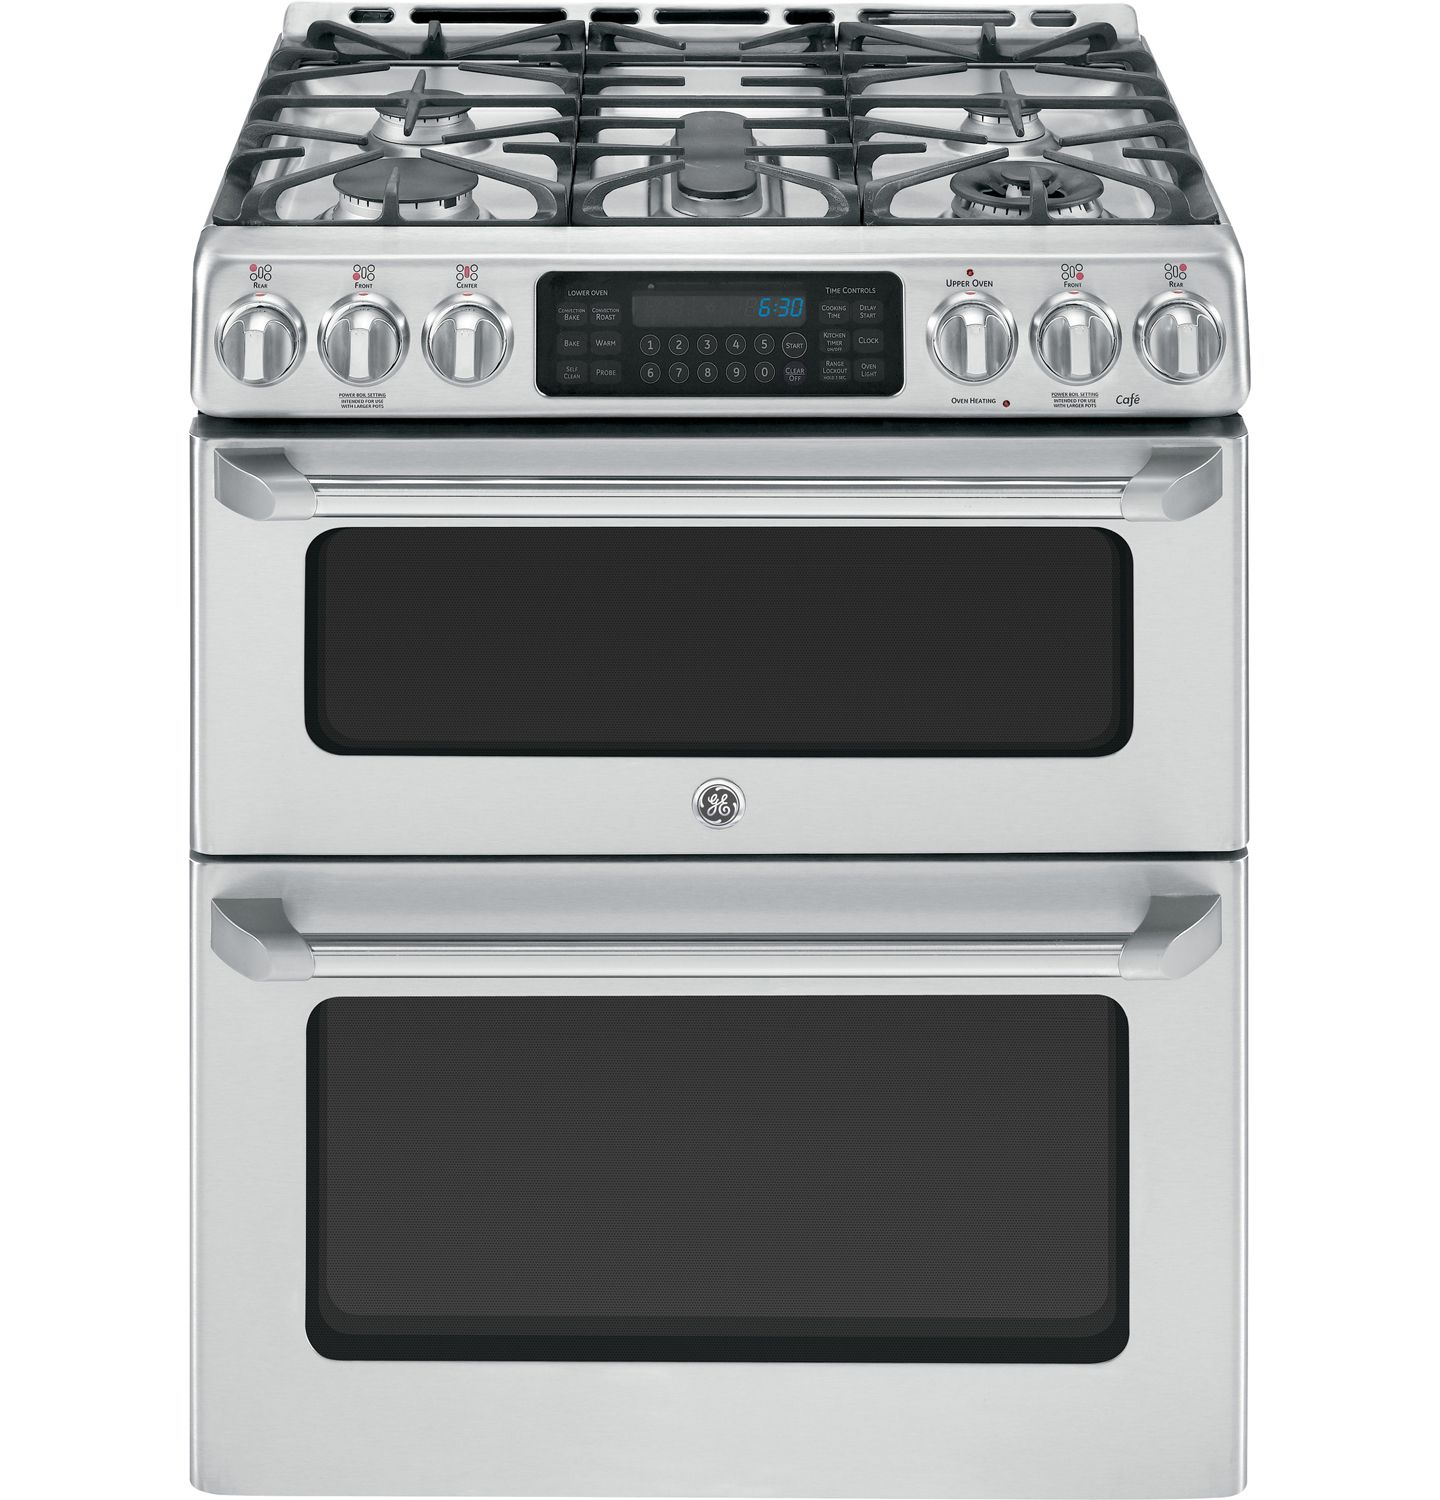 GE Cafe 30 Stainless Double Oven Gas Range CGS990SETSS #7D4E56